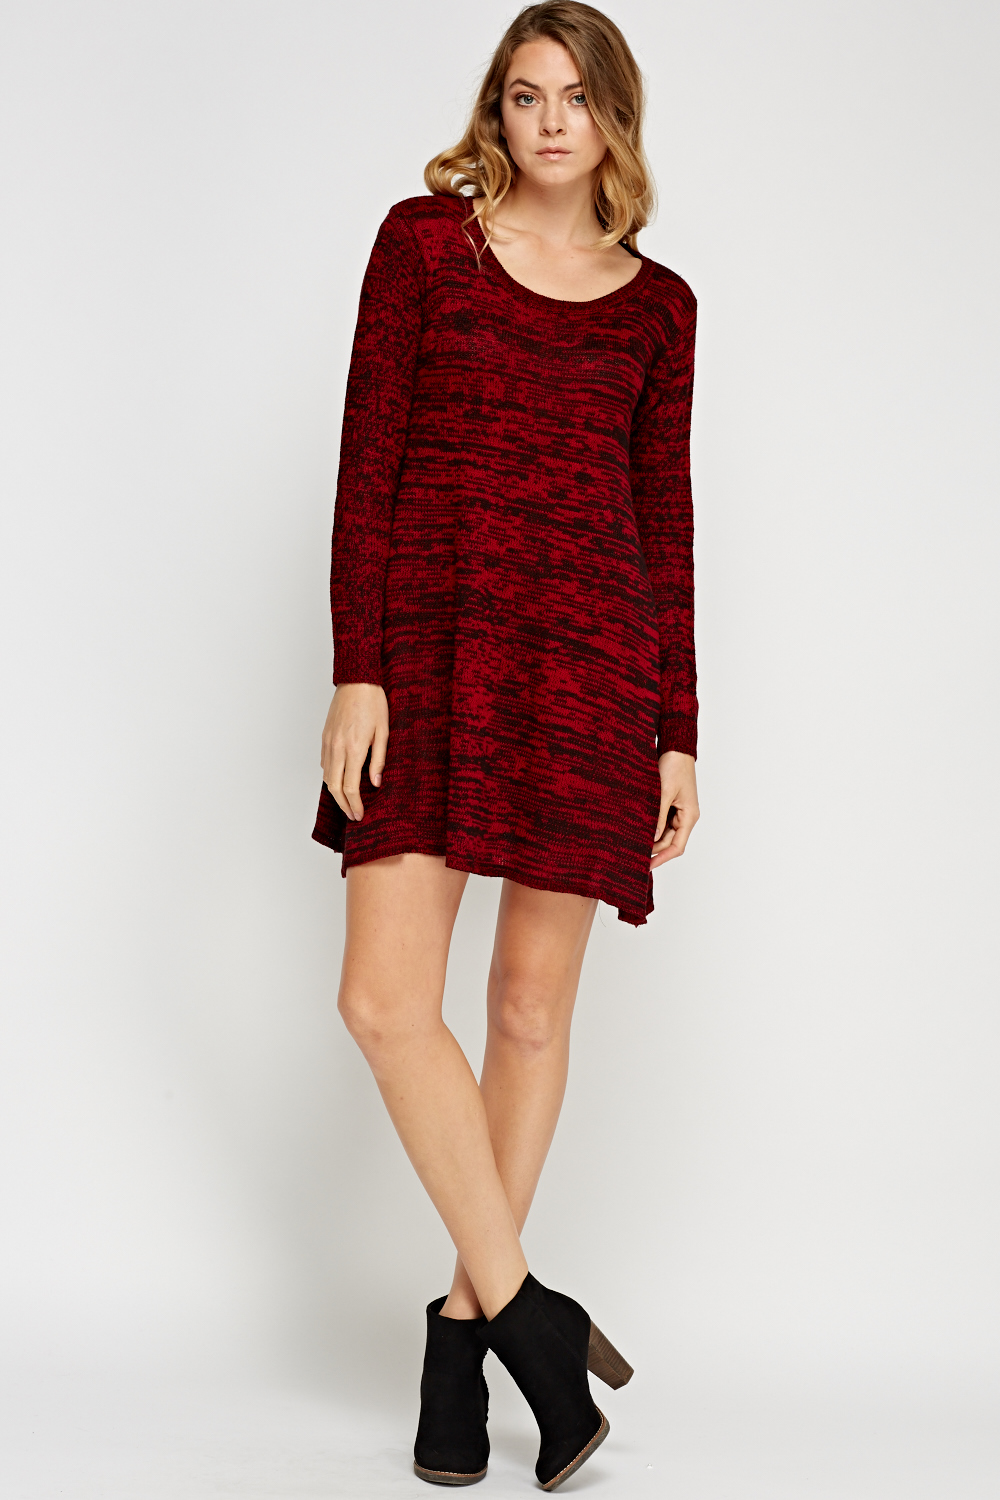 66cbfdf2aee6 Speckled Knitted Swing Jumper Dress - Just £5